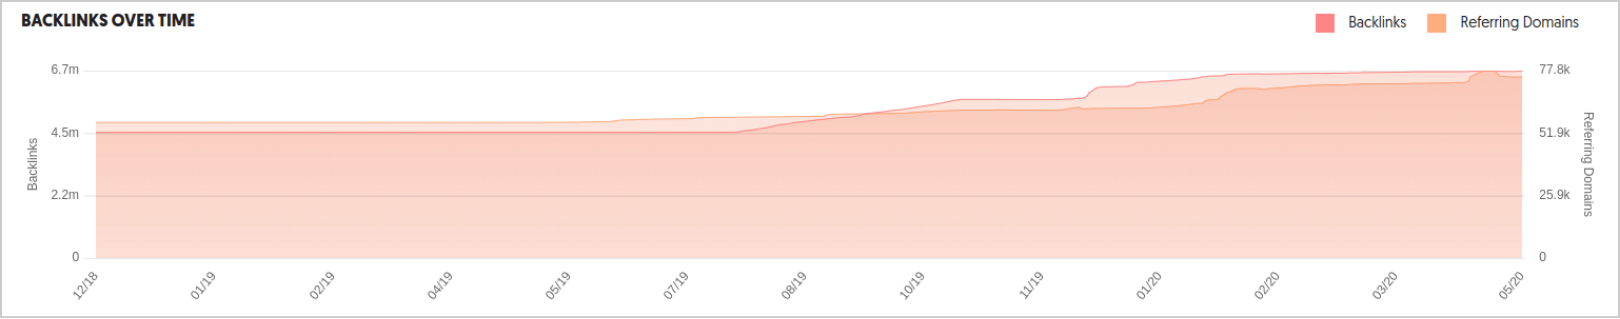 MOZ backlinks growth over time